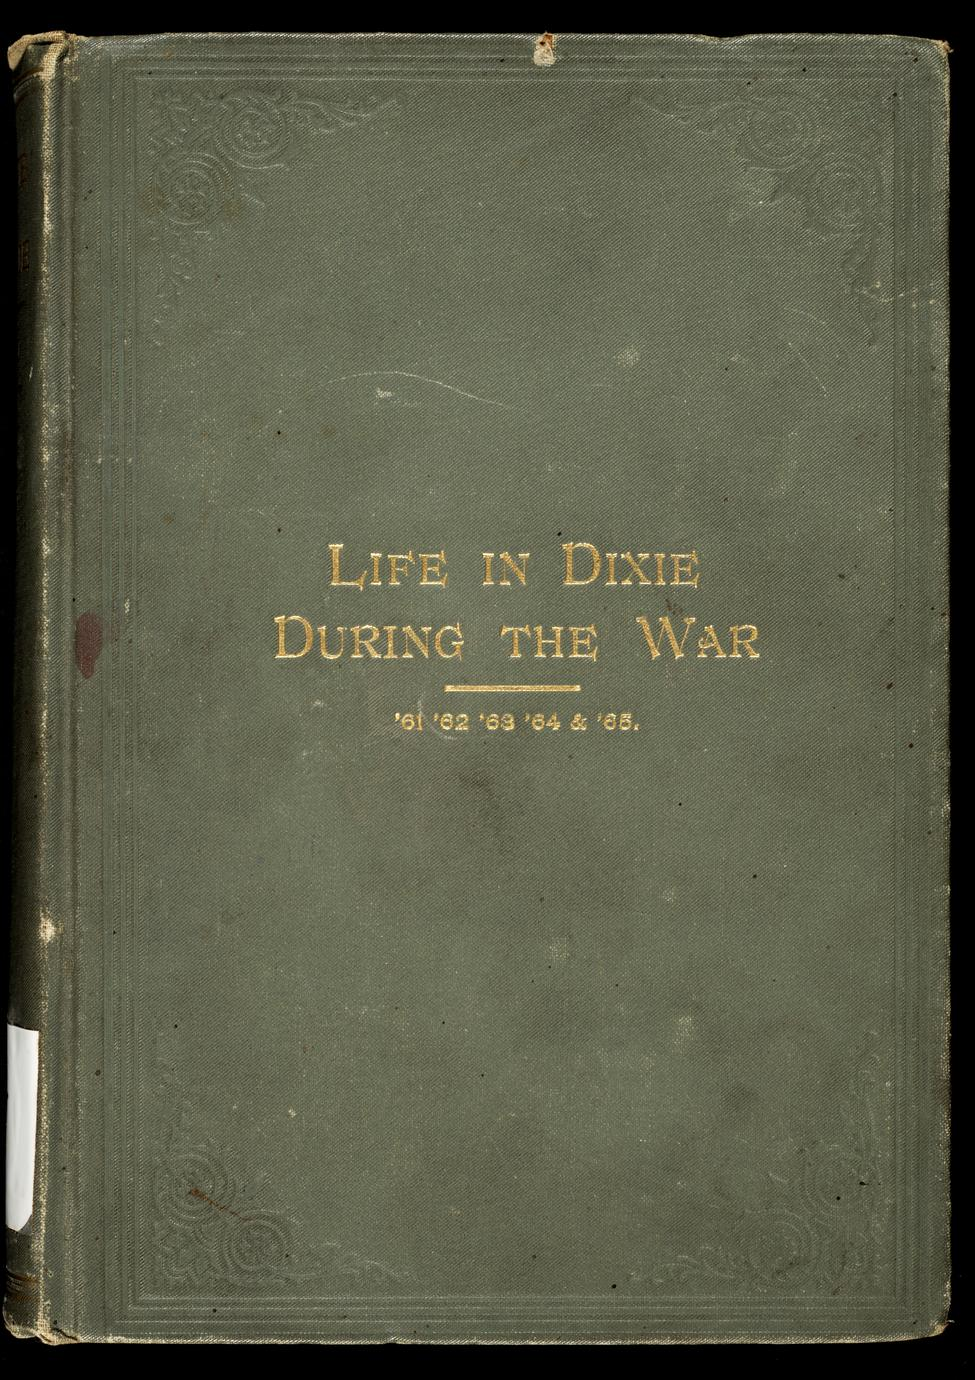 Life in Dixie during the war : 1861-1862-1863-1864-1865 (1 of 2)